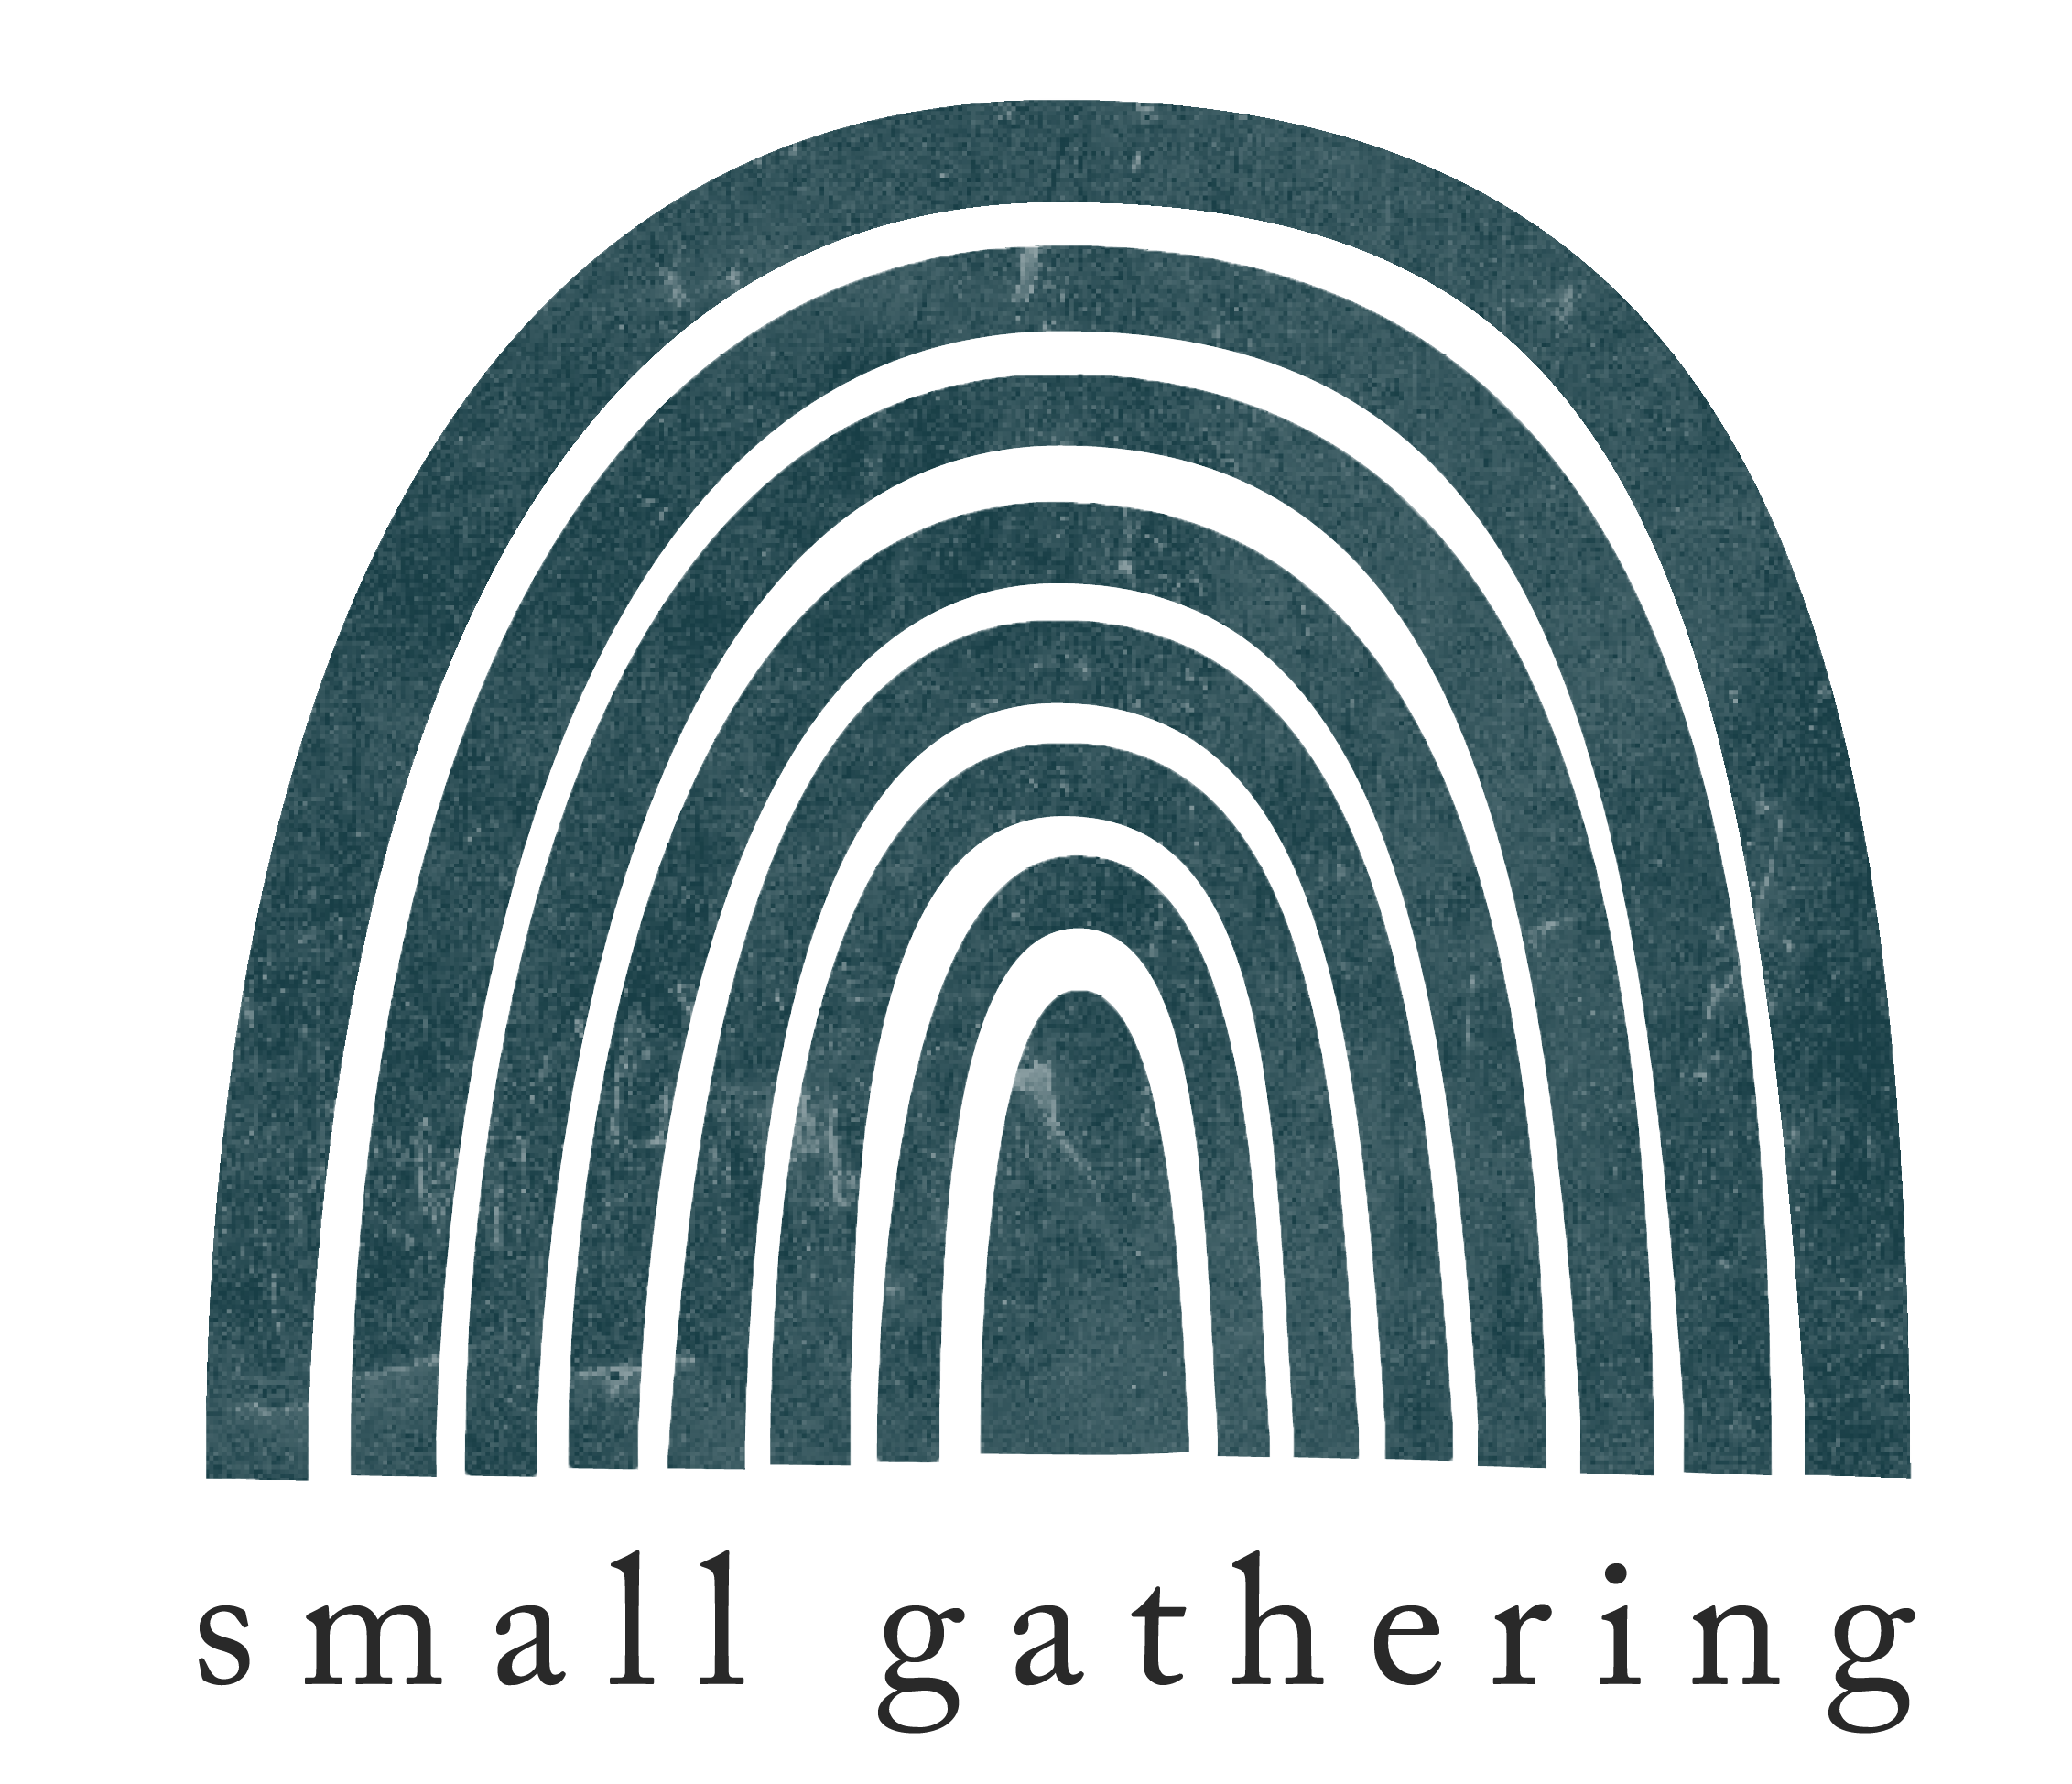 small_gathering_logo.png